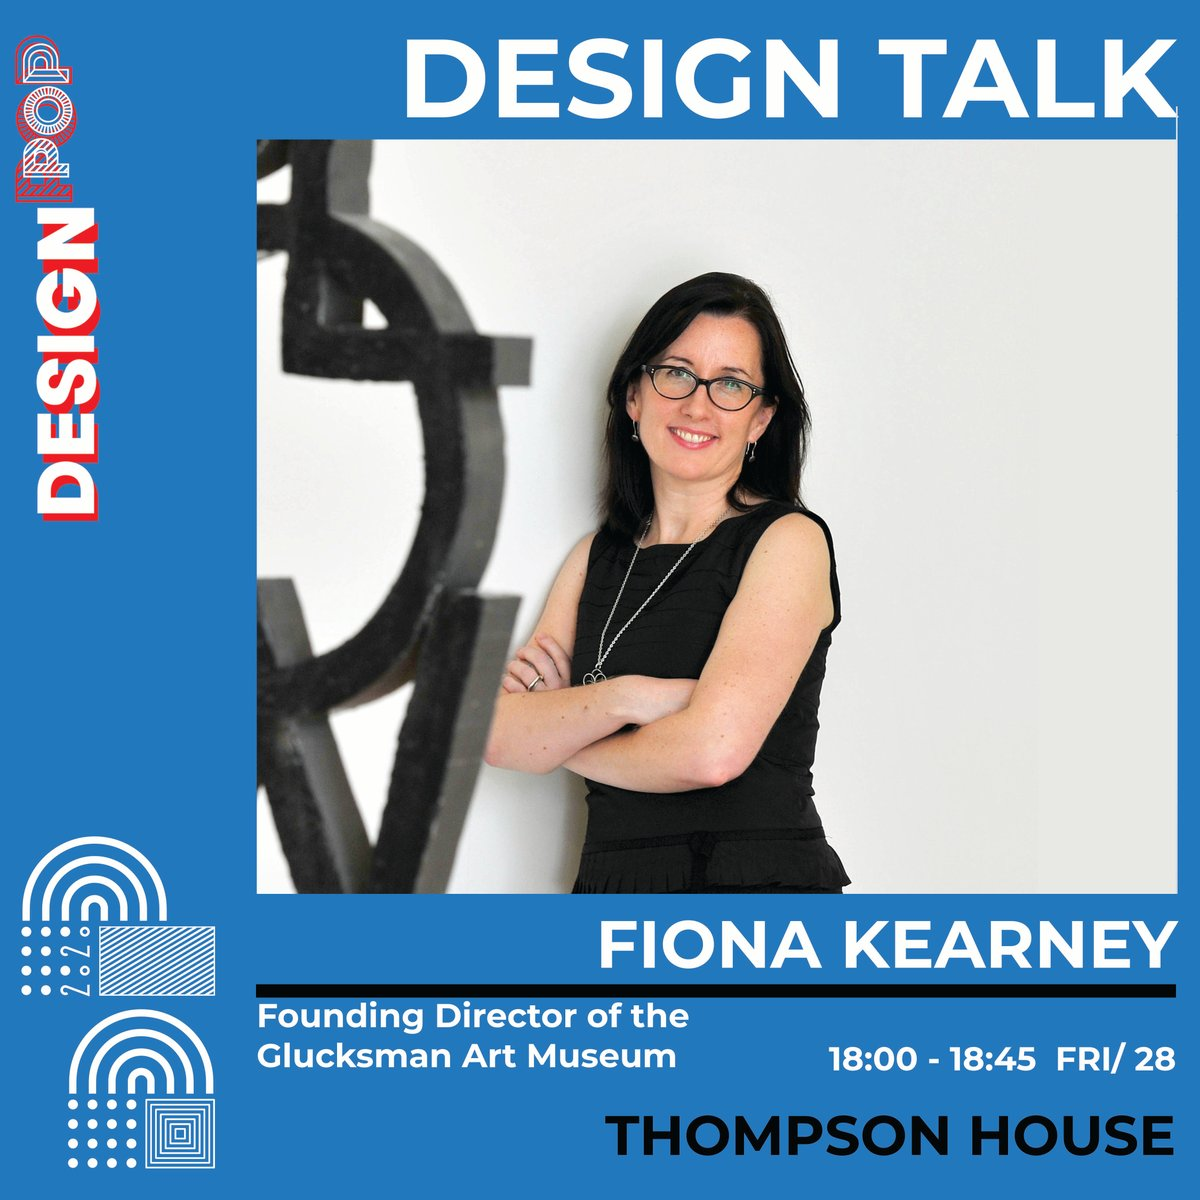 Design POP kicks off Friday the 28th of August with Fiona Kearney speaking at 6 pm - 6:45 pm and closing the night. Fiona is the founding Director of @theglucksman. #newlight #designtalk #designpopcork #designpop2020 #glucksmanart https://t.co/FDo6fnn2iX